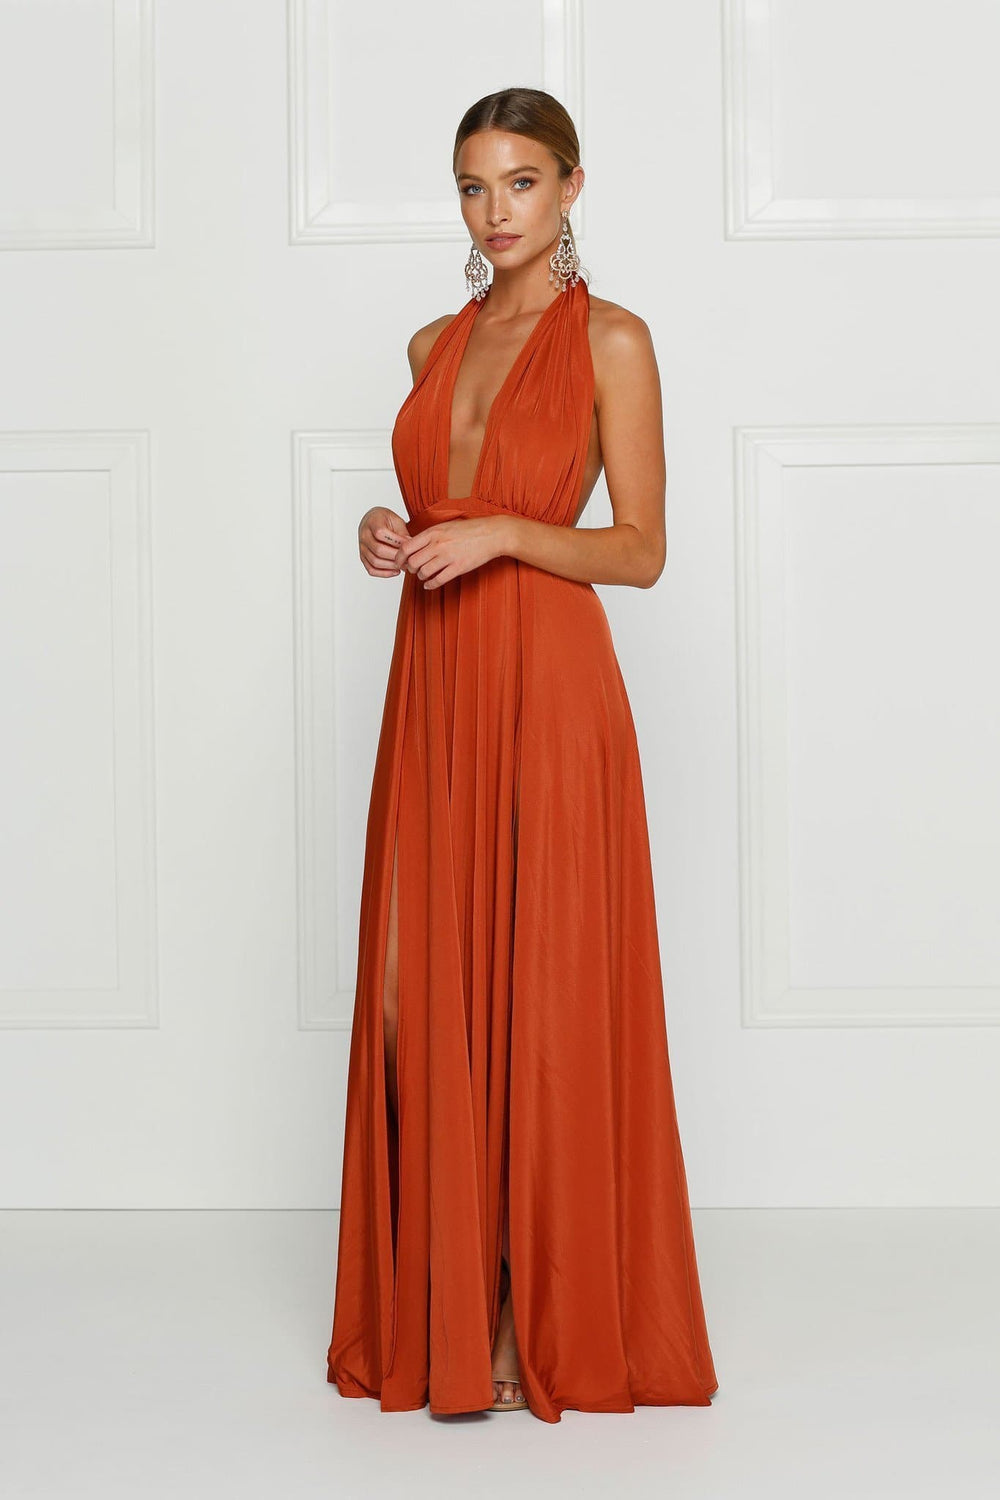 Catalina - Golden Rust Jersey Gown with Side Slits & Plunge Neckline